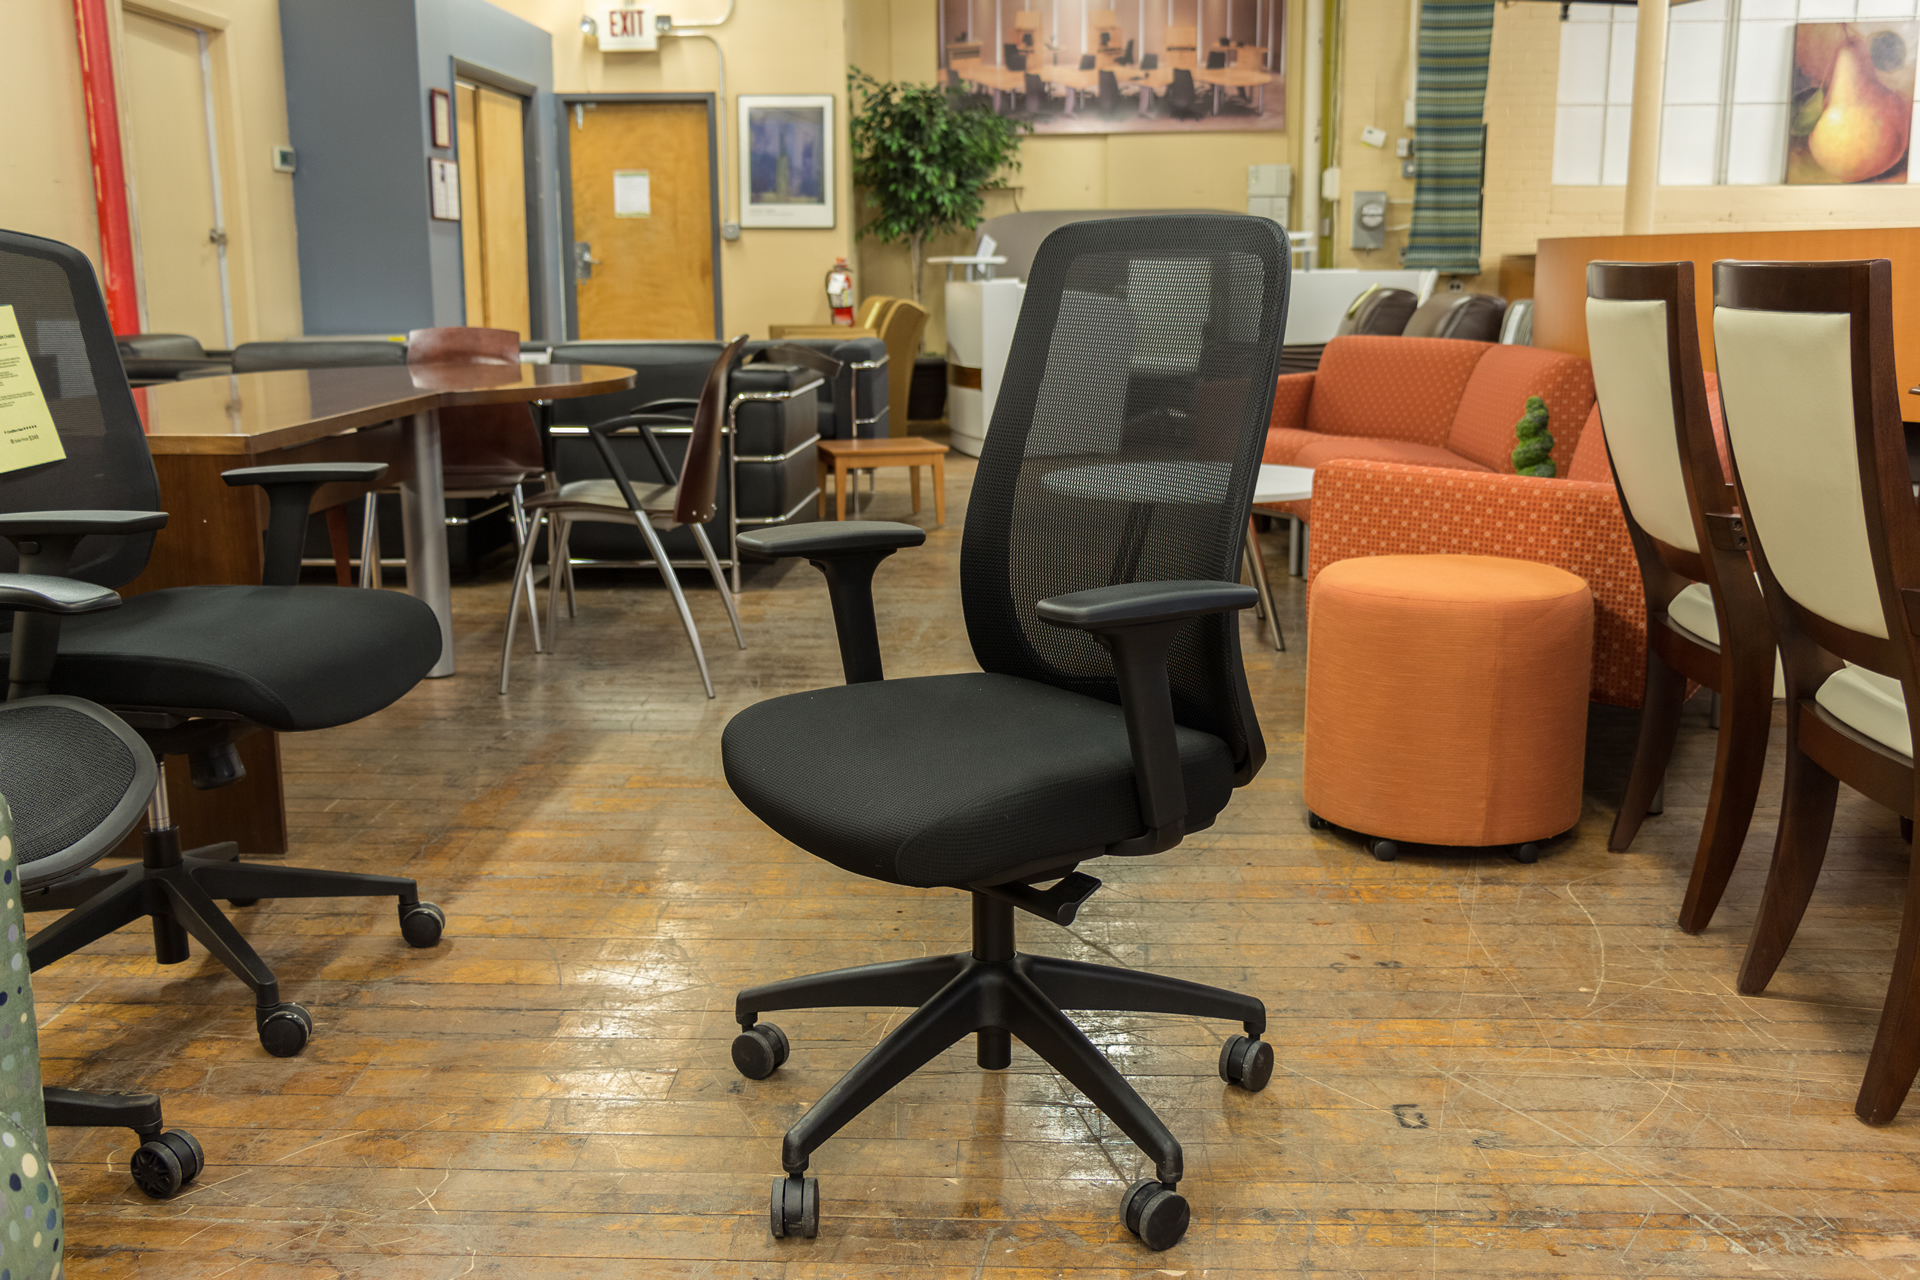 peartreeofficefurniture_peartreeofficefurniture_peartreeofficefurniture_ais-bolton-mesh-back-task-chairs.jpg